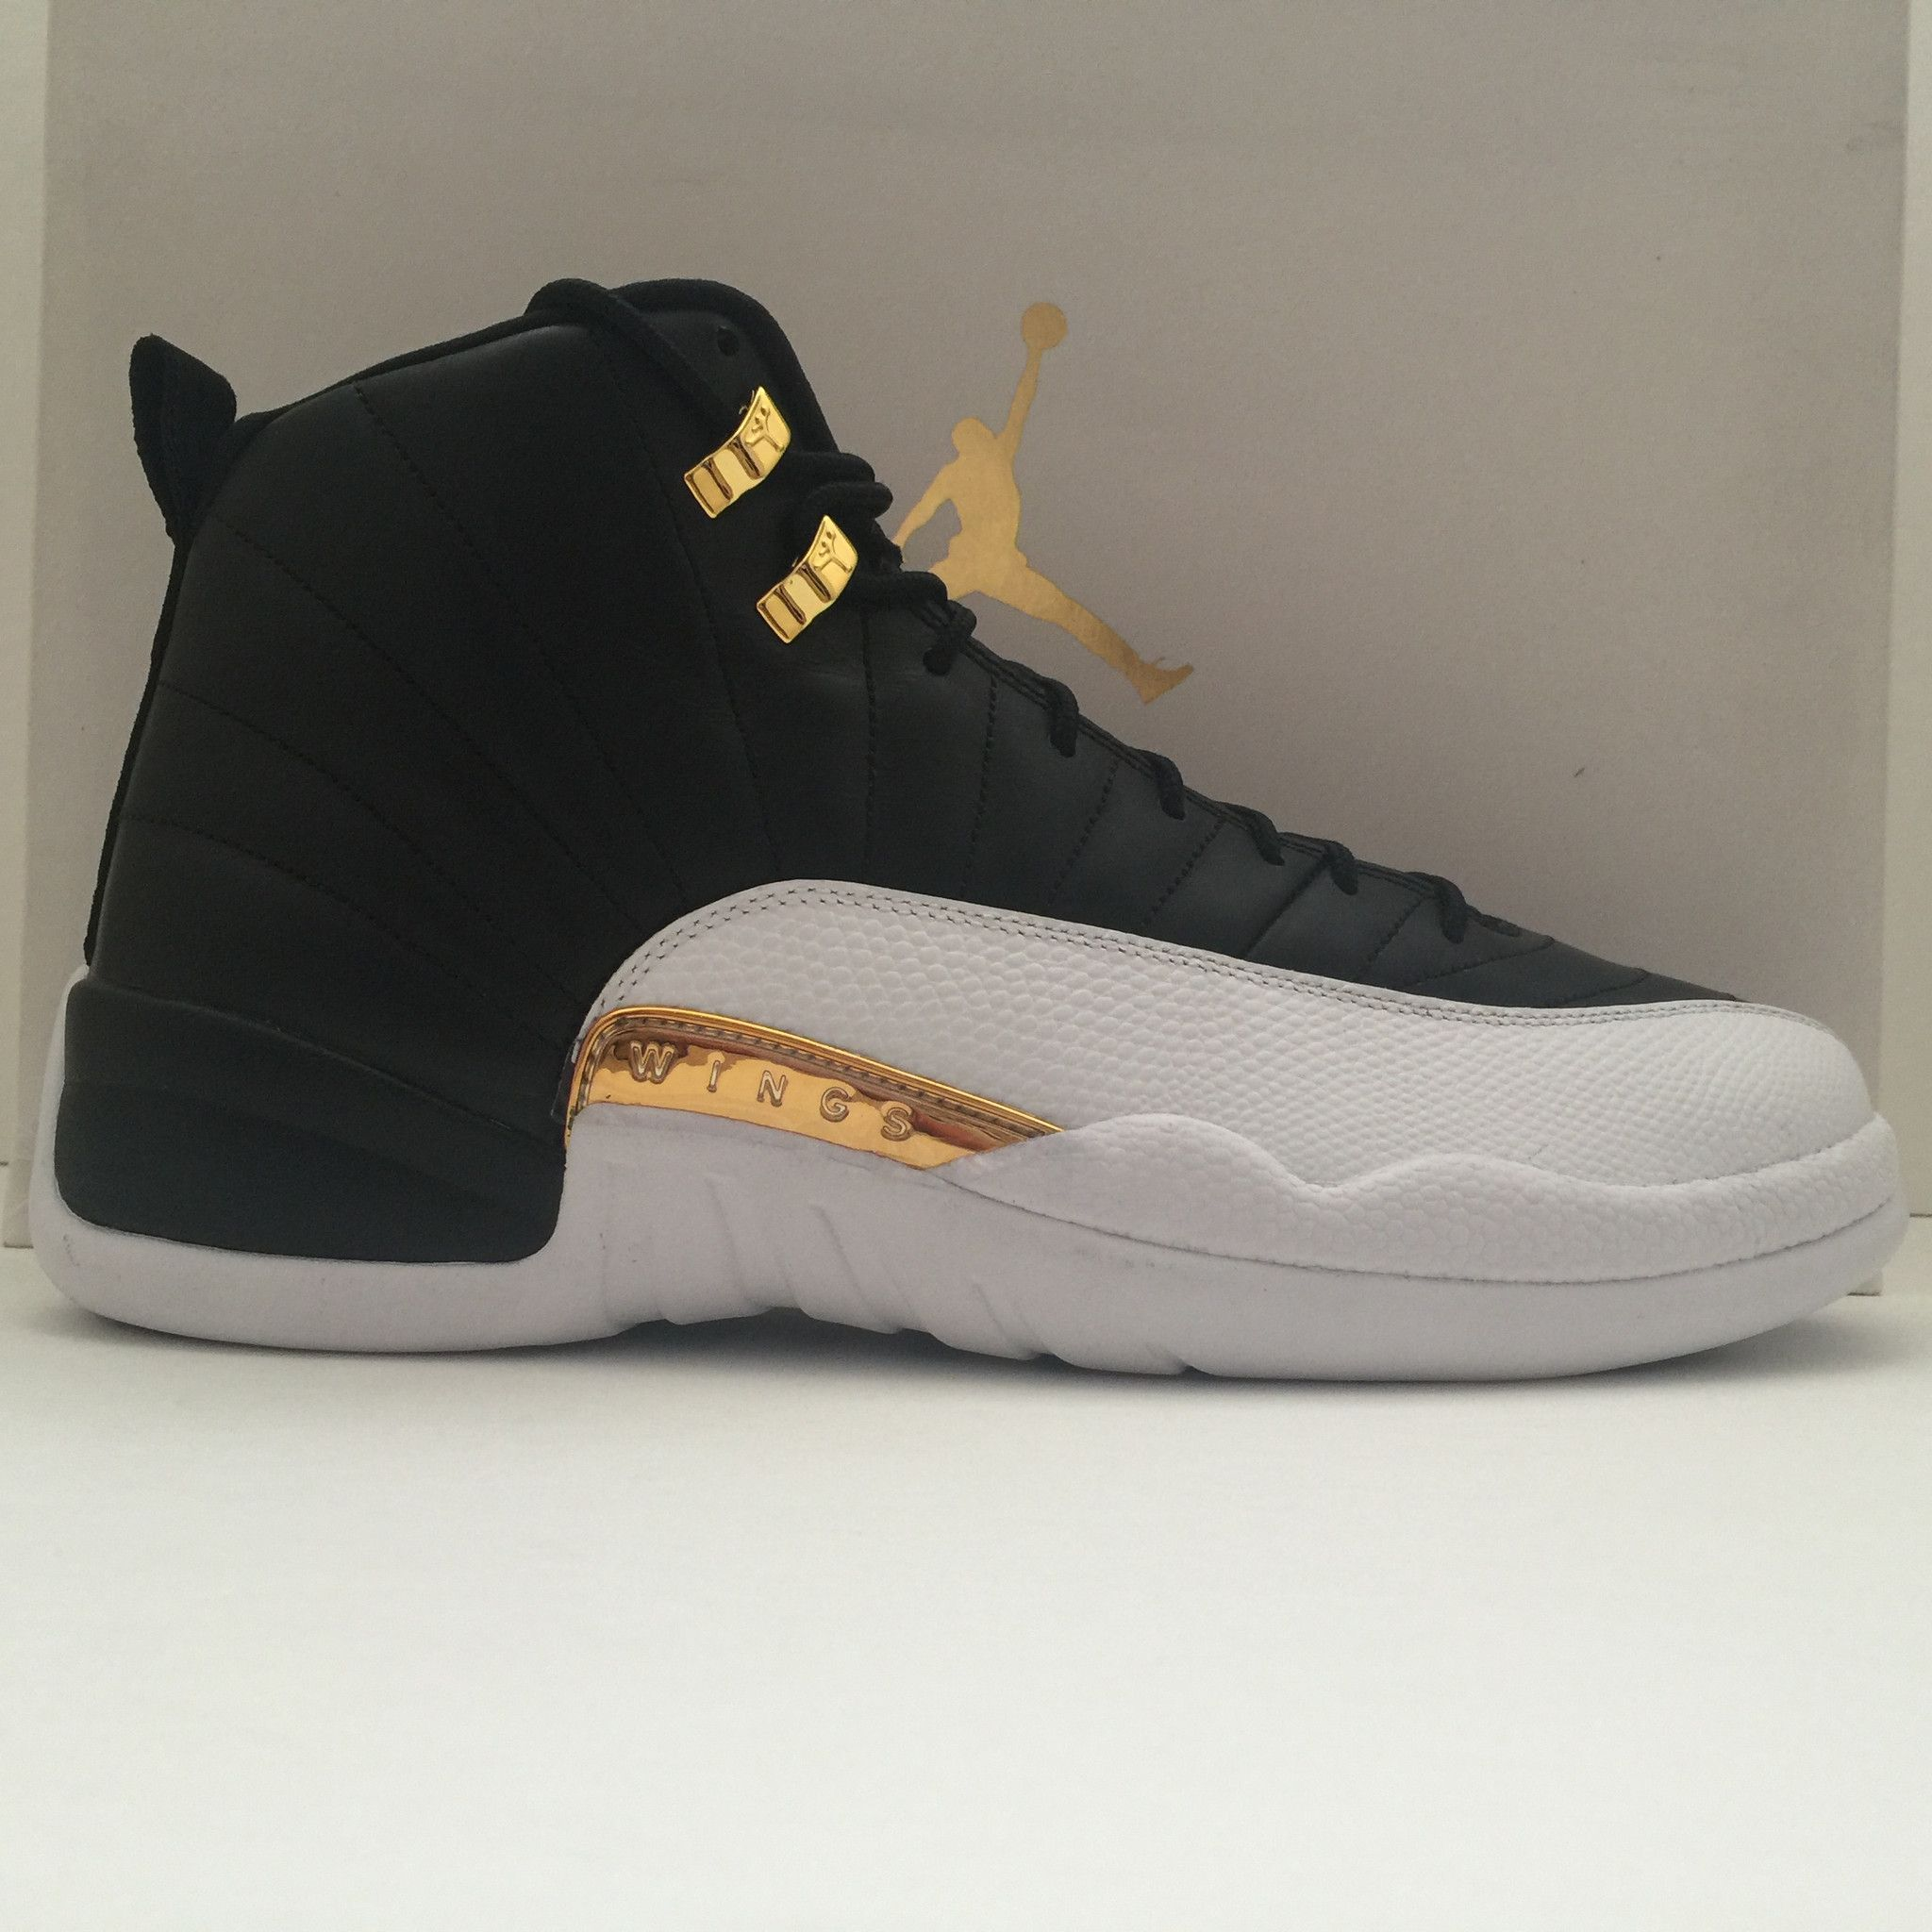 finest selection 75bfb 72954 DS Nike Air Jordan 12 XII Retro Wings Size 11 | Runway ...